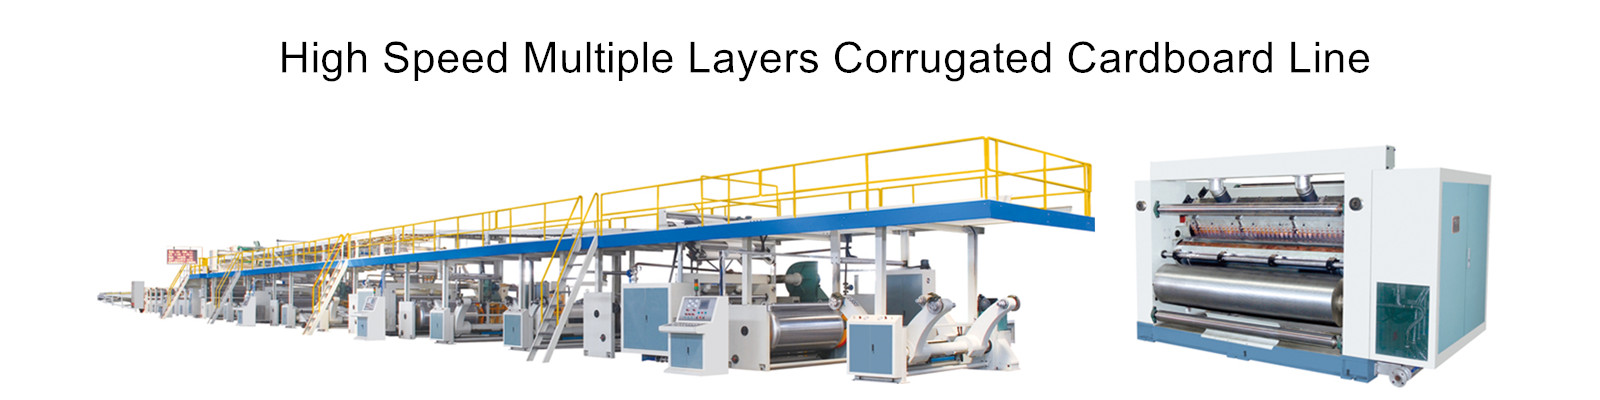 corrugated cardboard manufacturing machine